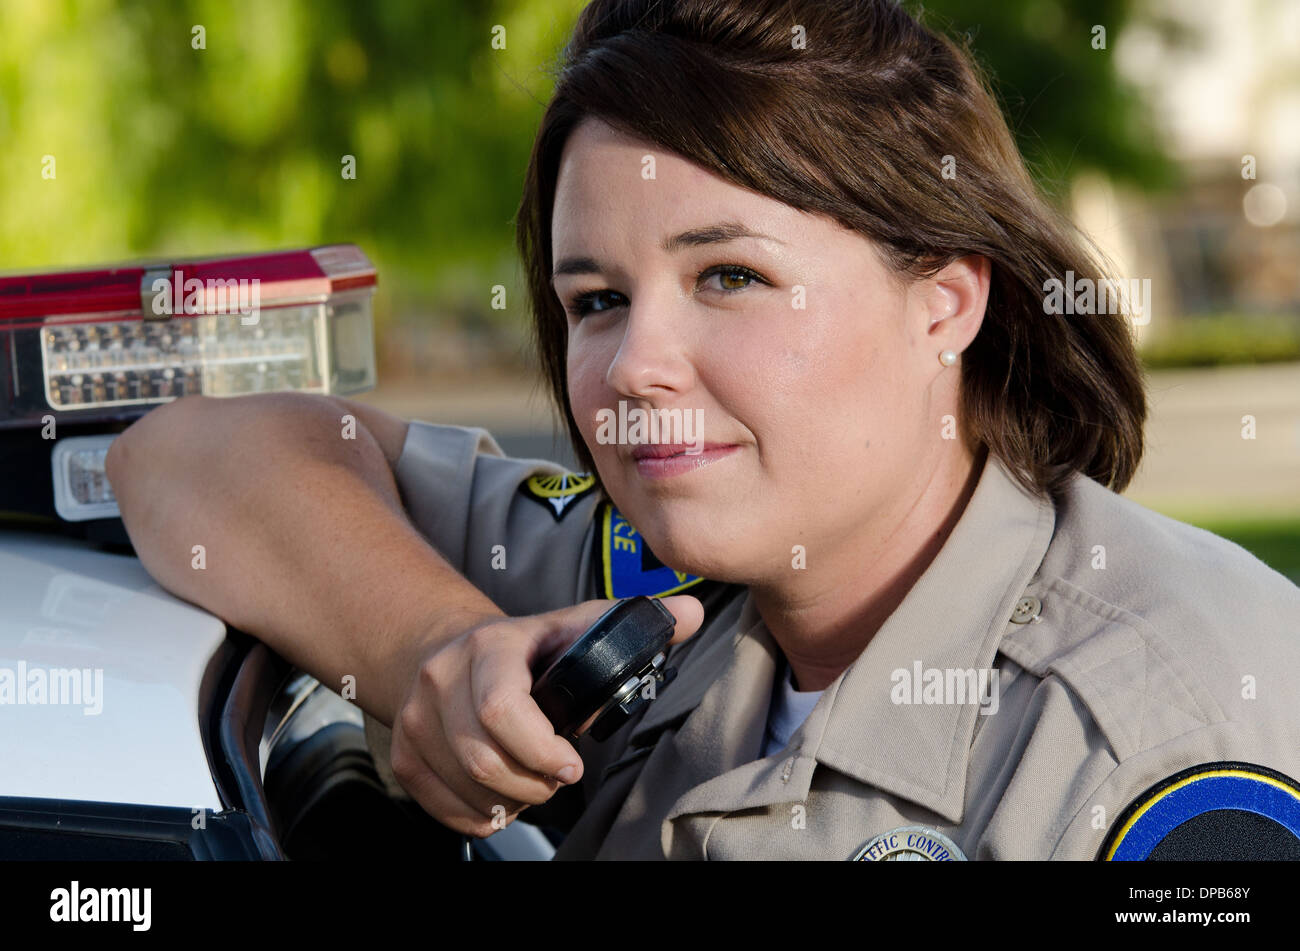 a female police officer holds the radio as she's about to